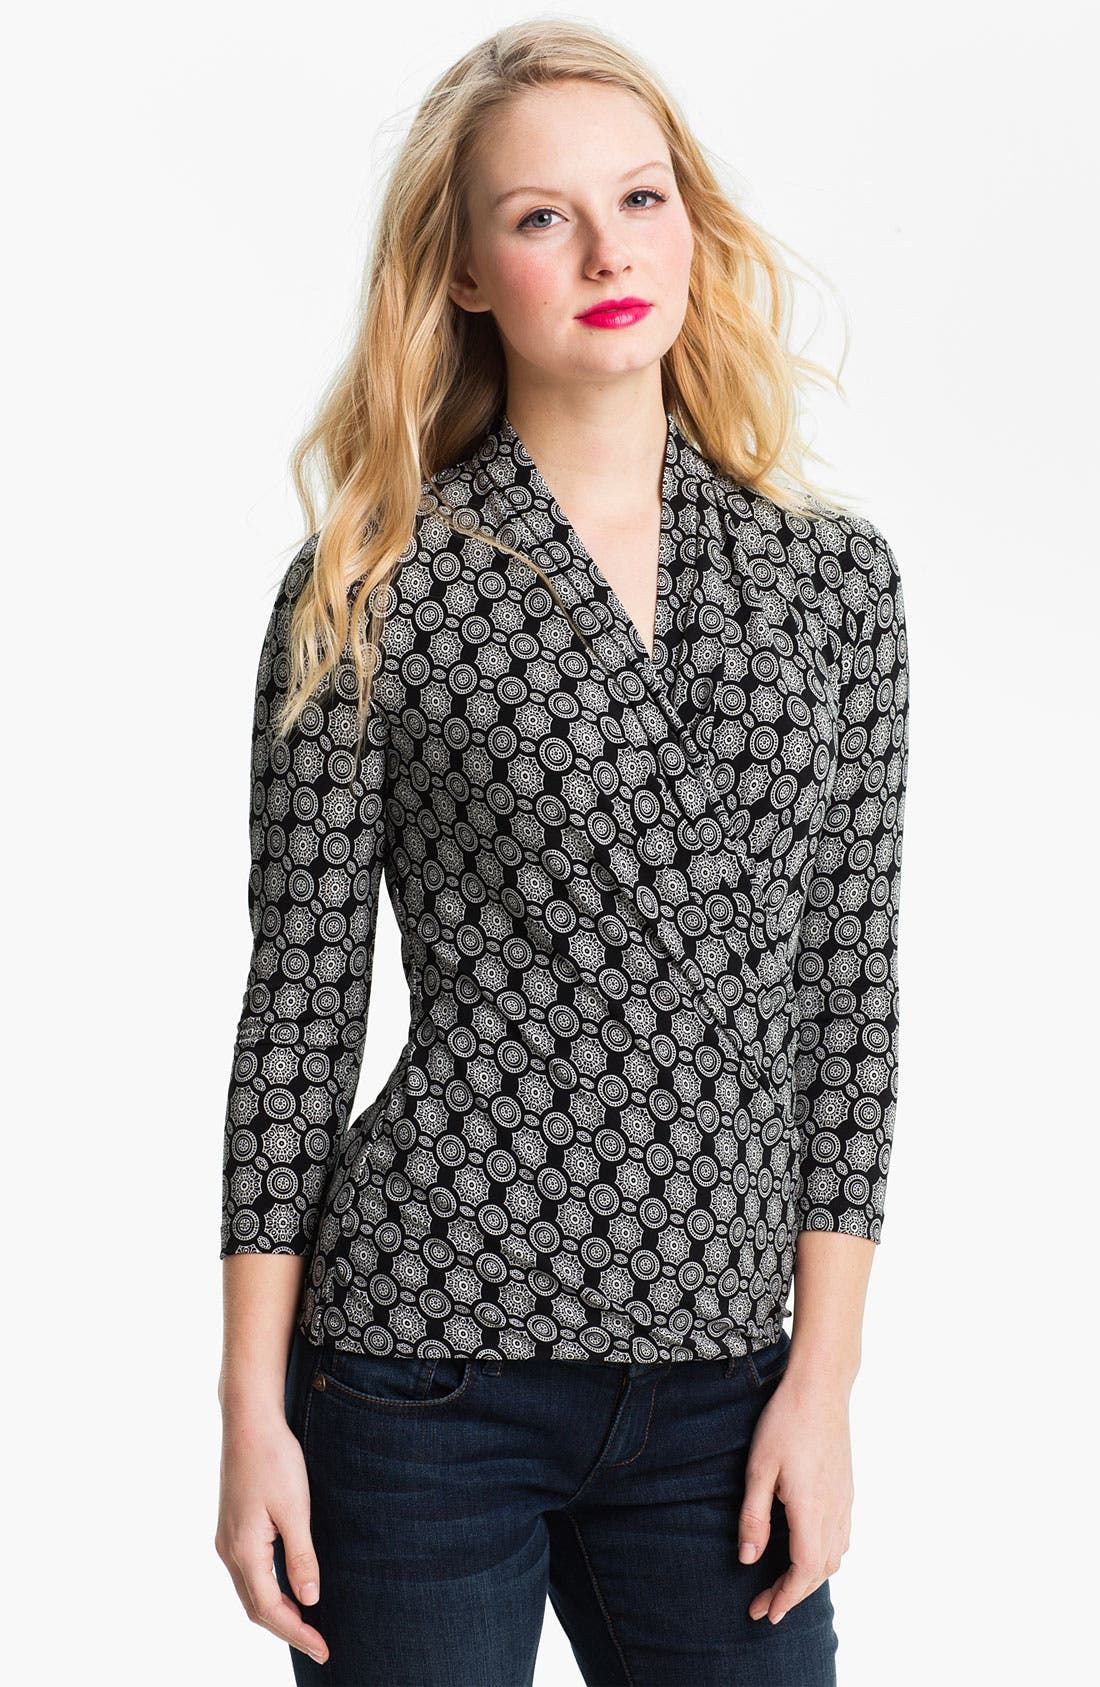 Alternate Image 1 Selected - Vince Camuto 'Lace Medallions' Faux Wrap Top